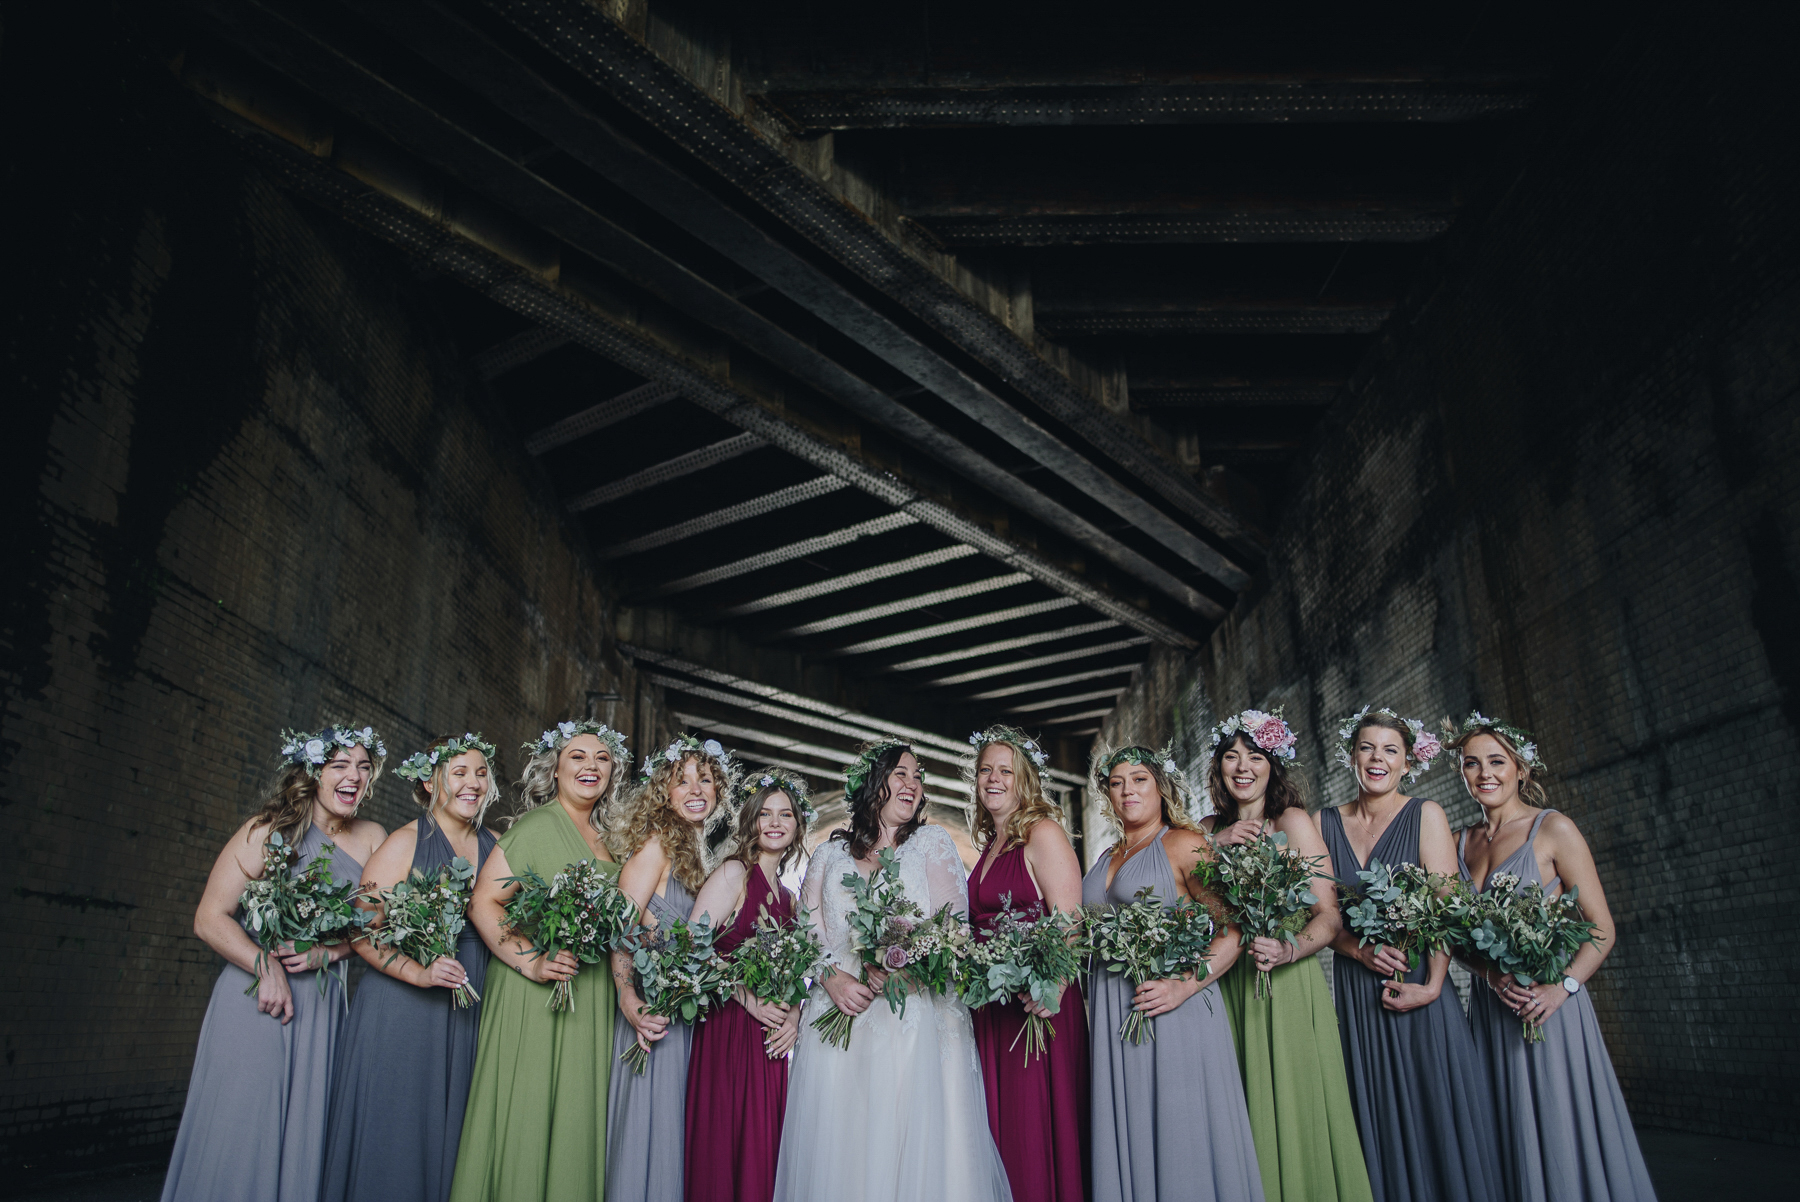 Alternative_Manchester_Wedding_Photography_The_Pin-Up_Bride_Photography-54.jpg